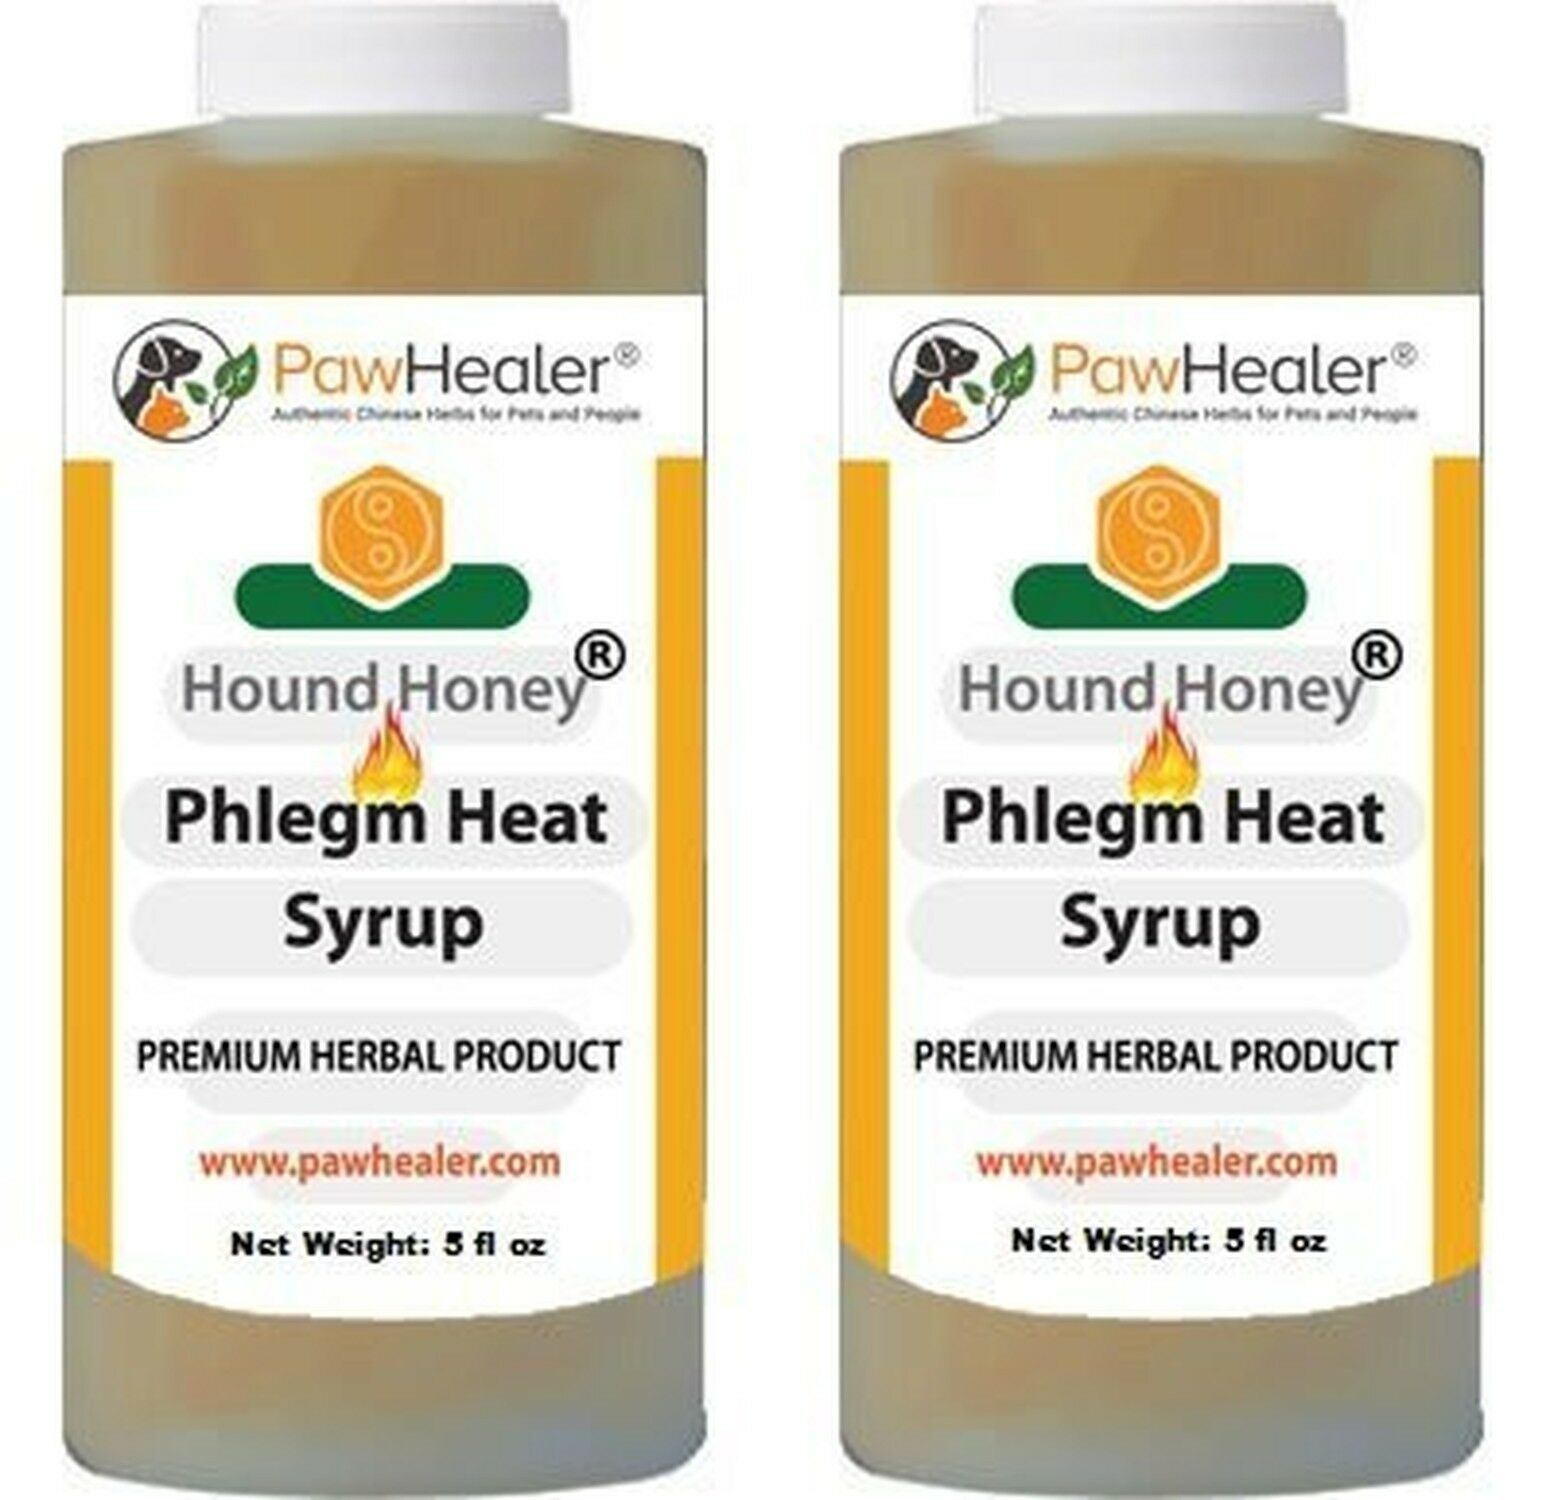 Dog Cough Remedy-HHoney Phlegm Heat-2PAK- 5 fl oz Herbal Suppressant for Trachea